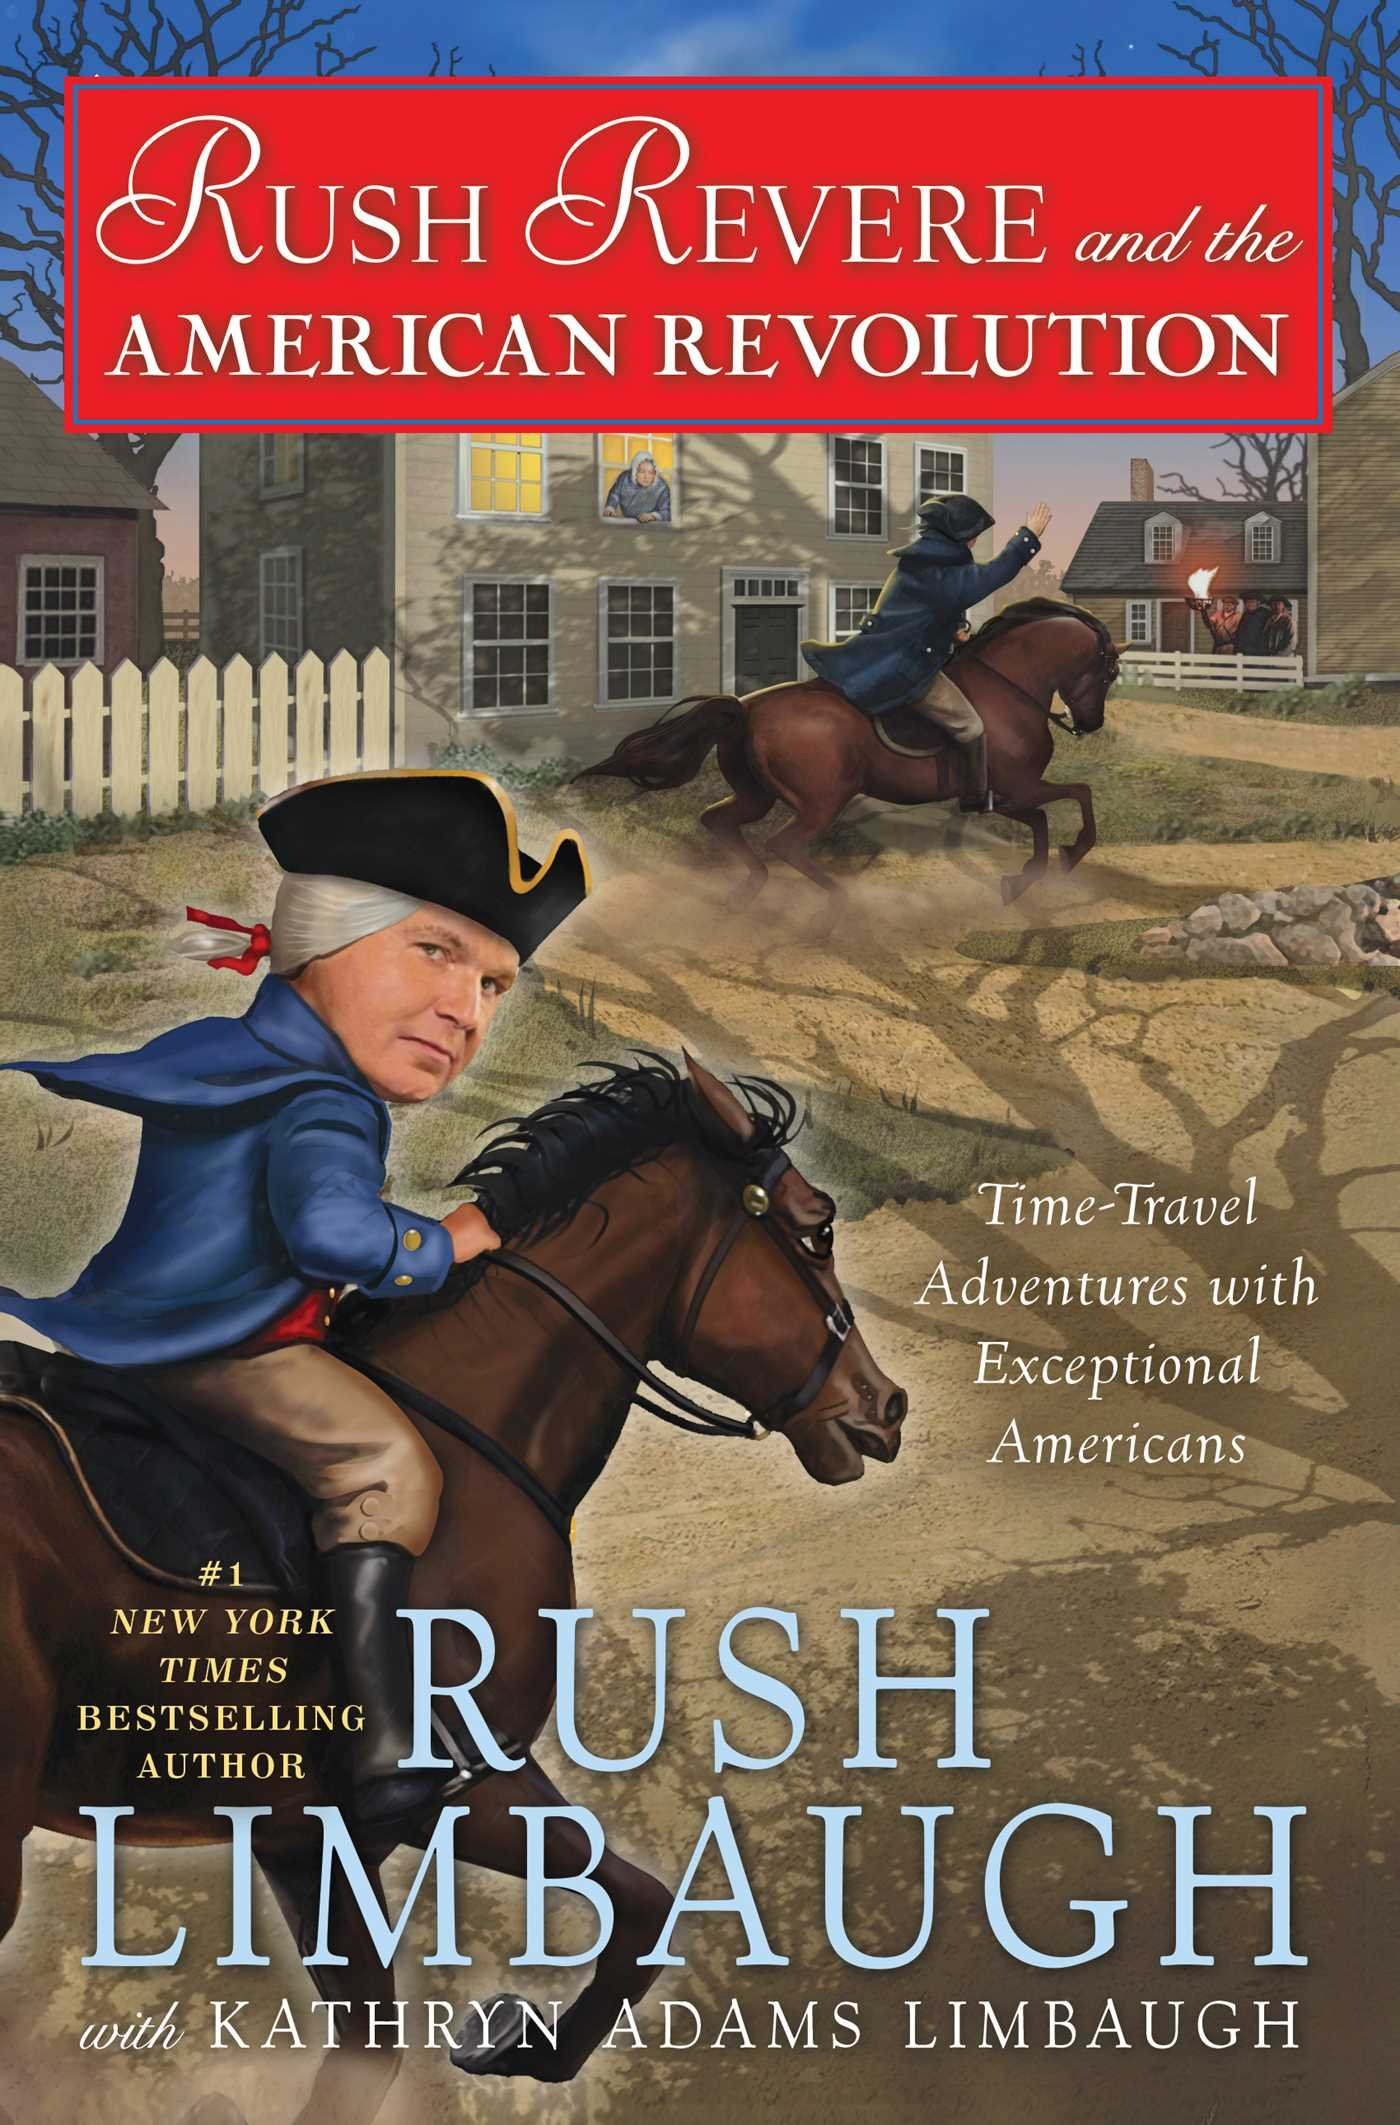 The Further Adventures of Rush Revere: Rush Revere and the Brave Pilgrims / Rush Revere and the First Patriots / Rush Revere and the American Revolution / Rush Revere and the Star-Spangled Banner by Threshold Editions (Image #5)